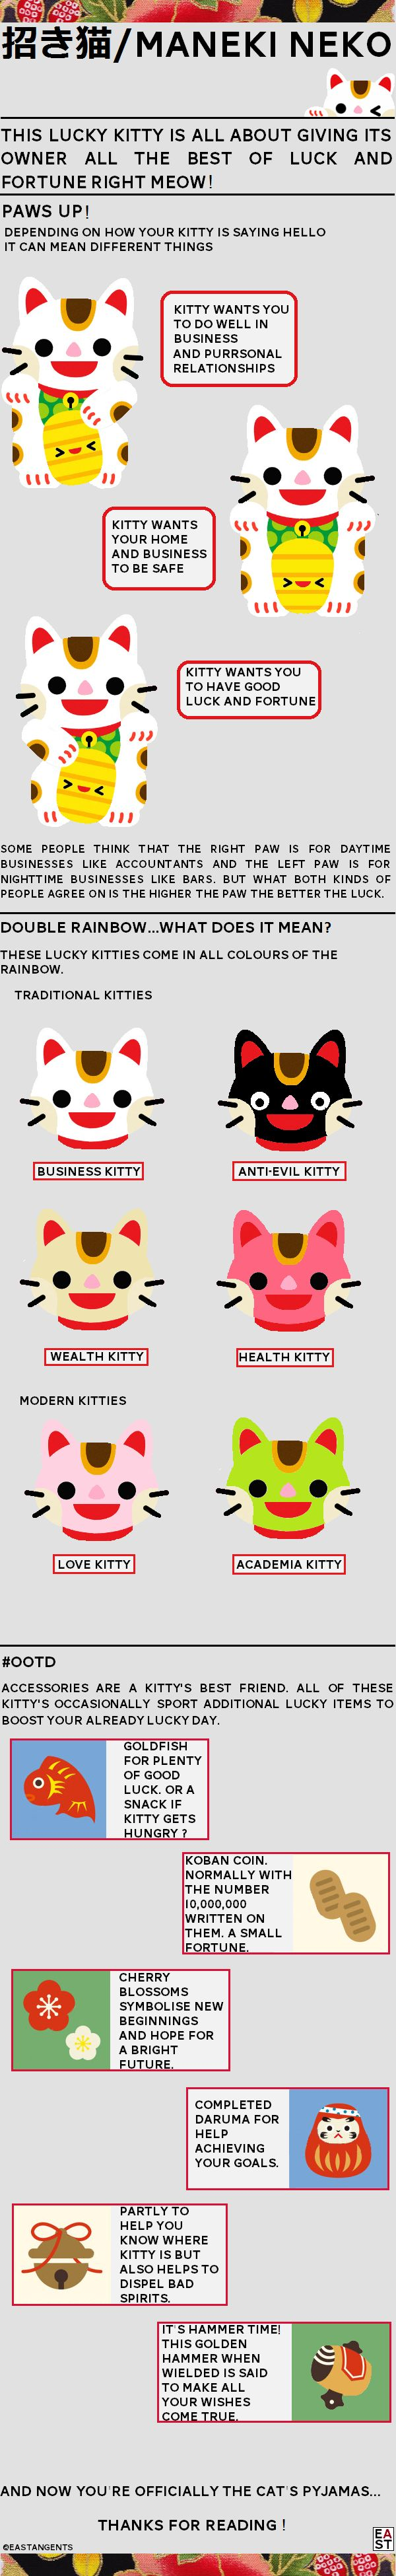 All you need to know about Maneki Neko: Japan's luckiest #cat. Made by yours truly. #HelloKitty #Cats